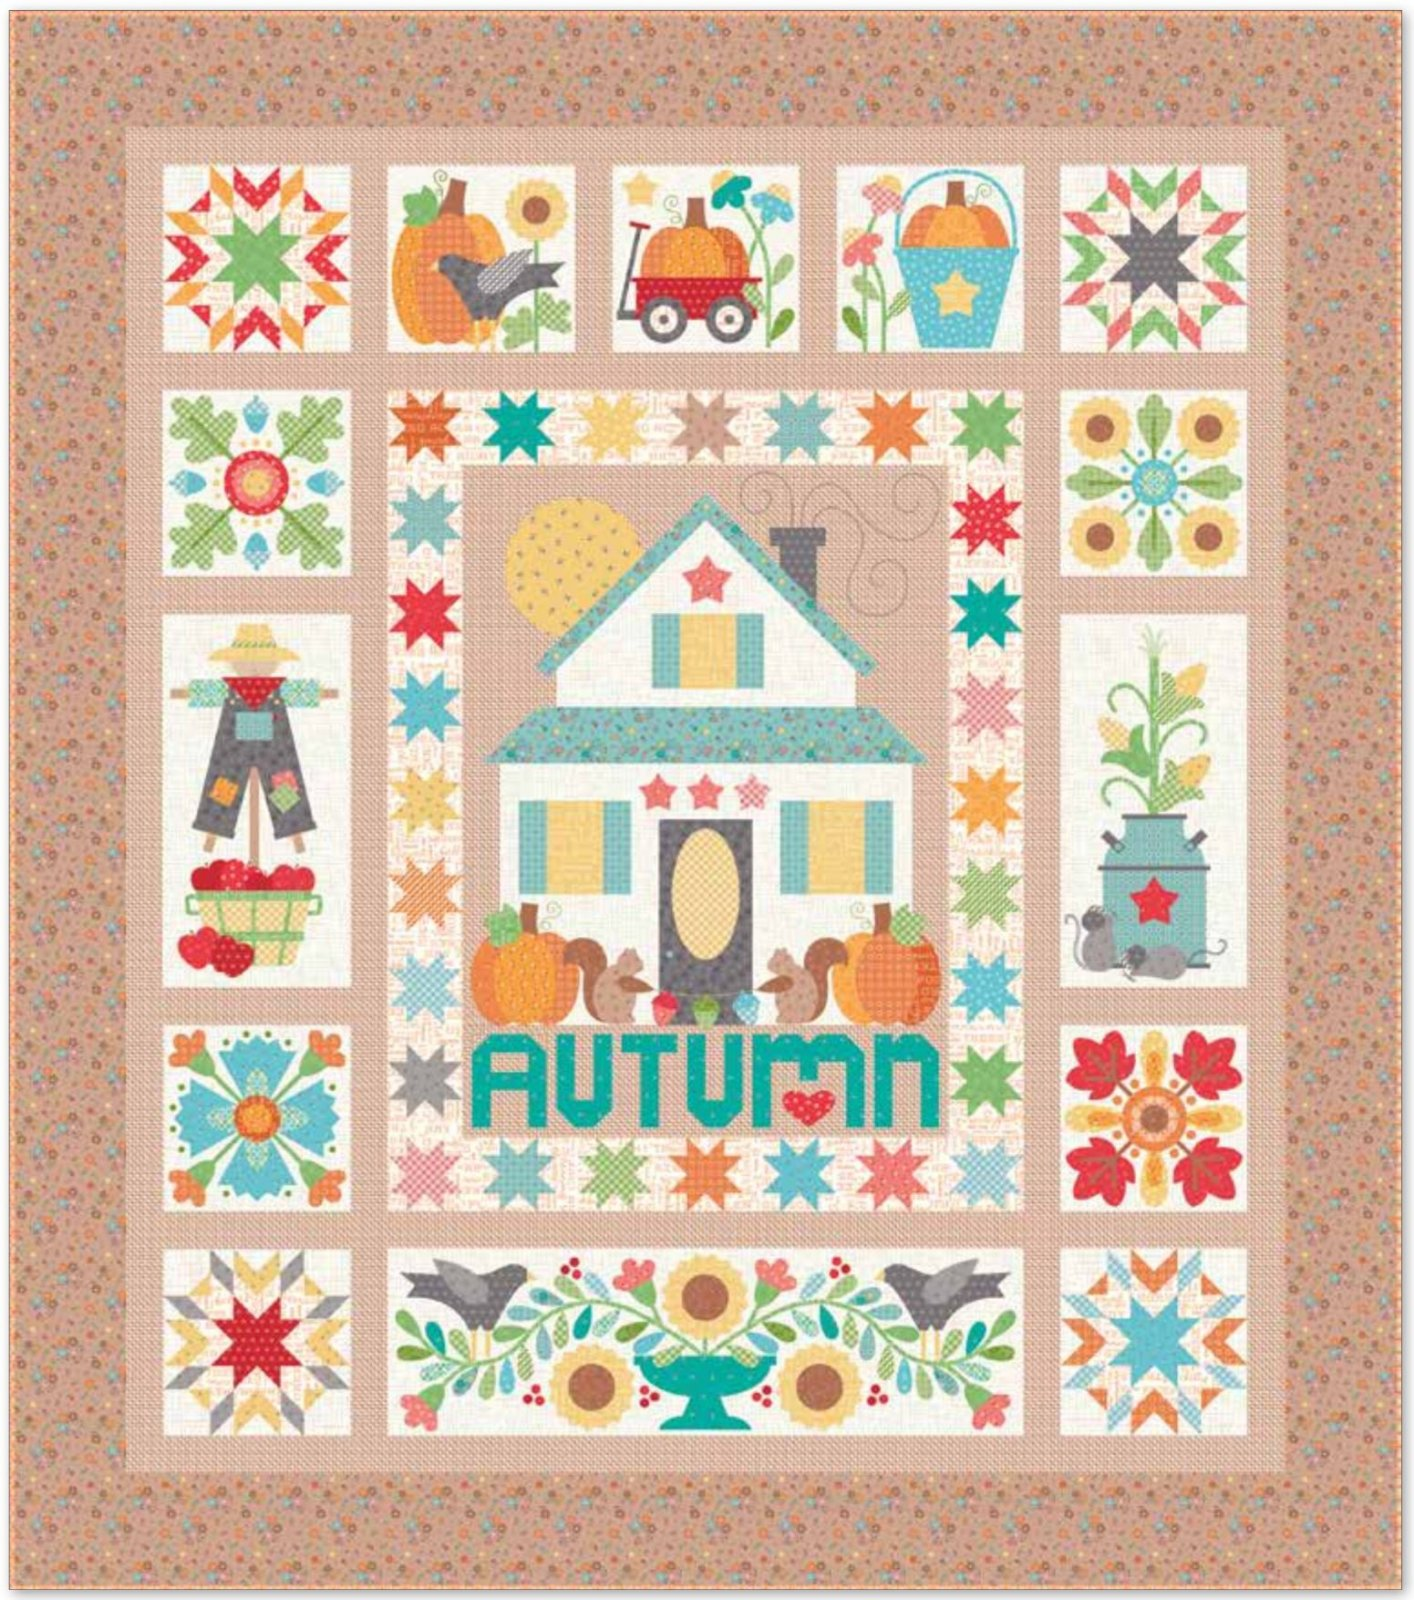 Autumn Love Sew Along Fabric Kit